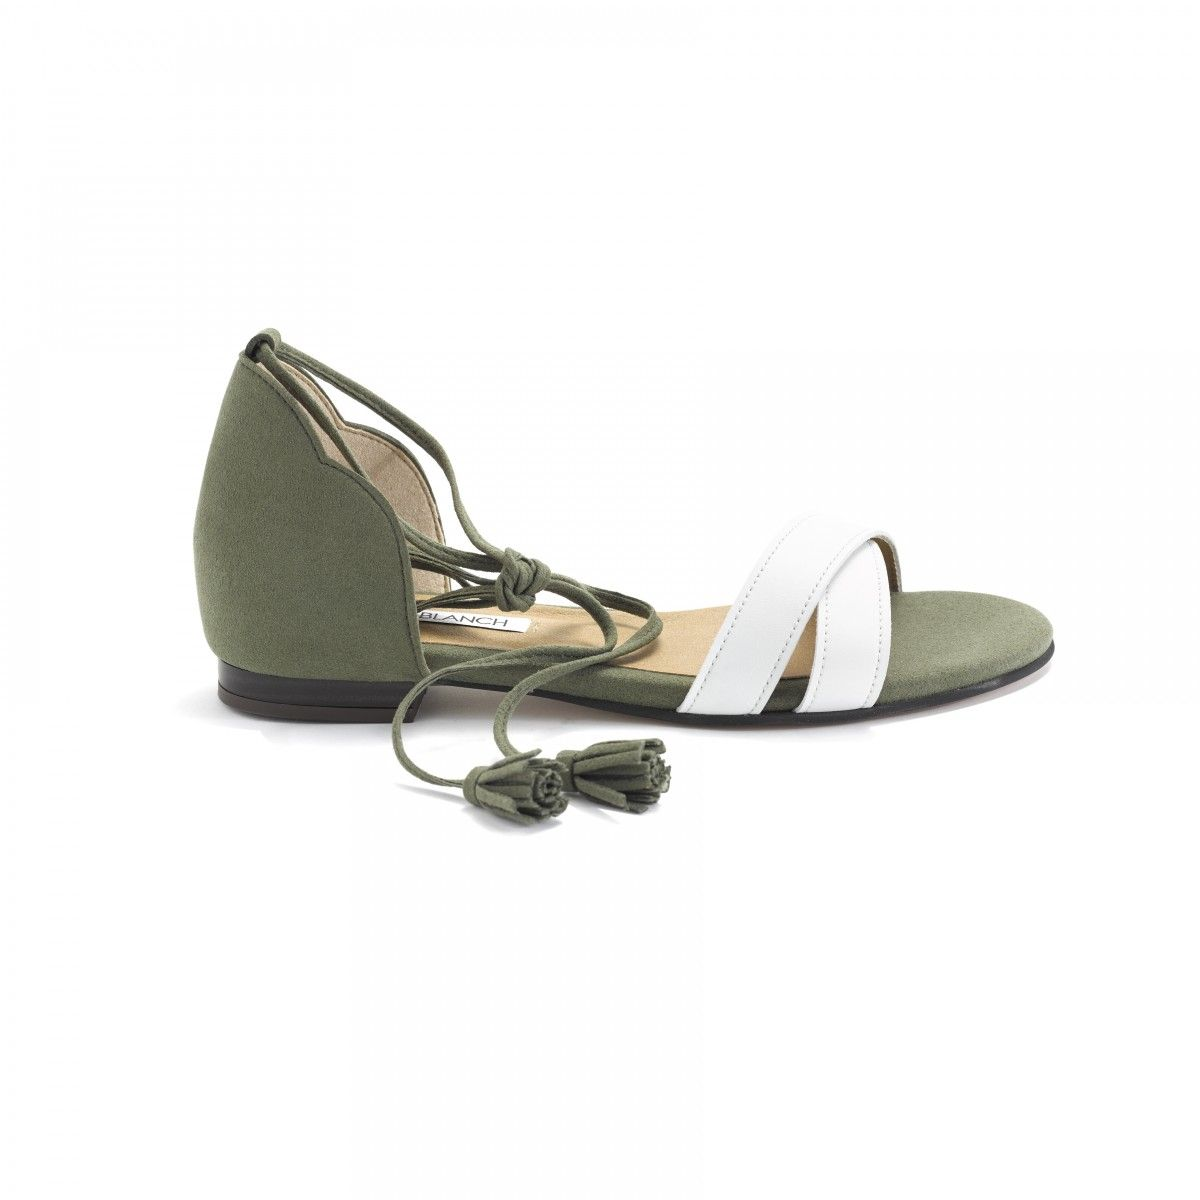 004aa45b1370 Cruelty free khaki sandals shoes designed and manufactured by ByBlanch